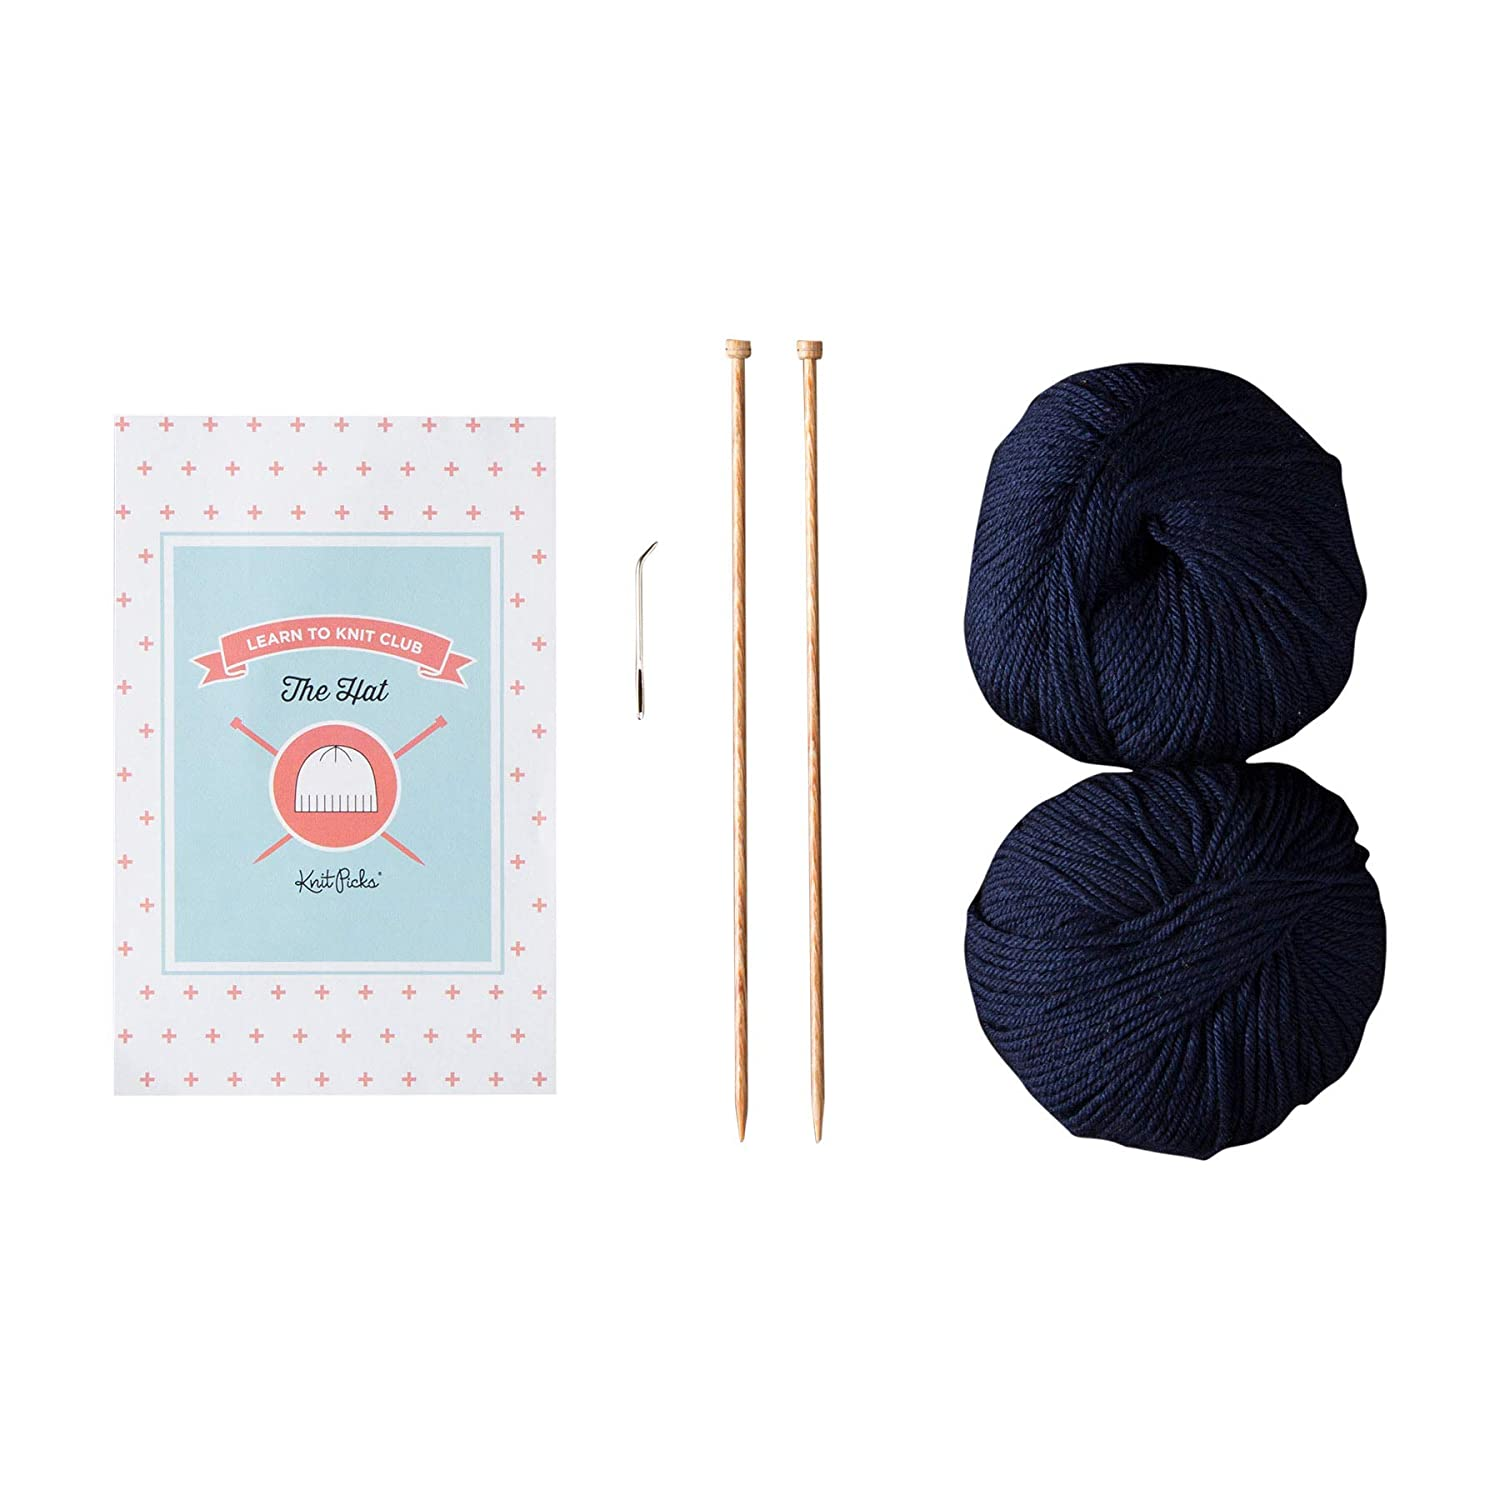 Beginner Knitting Kit Knit Picks Learn to Knit Club The Hat Blue